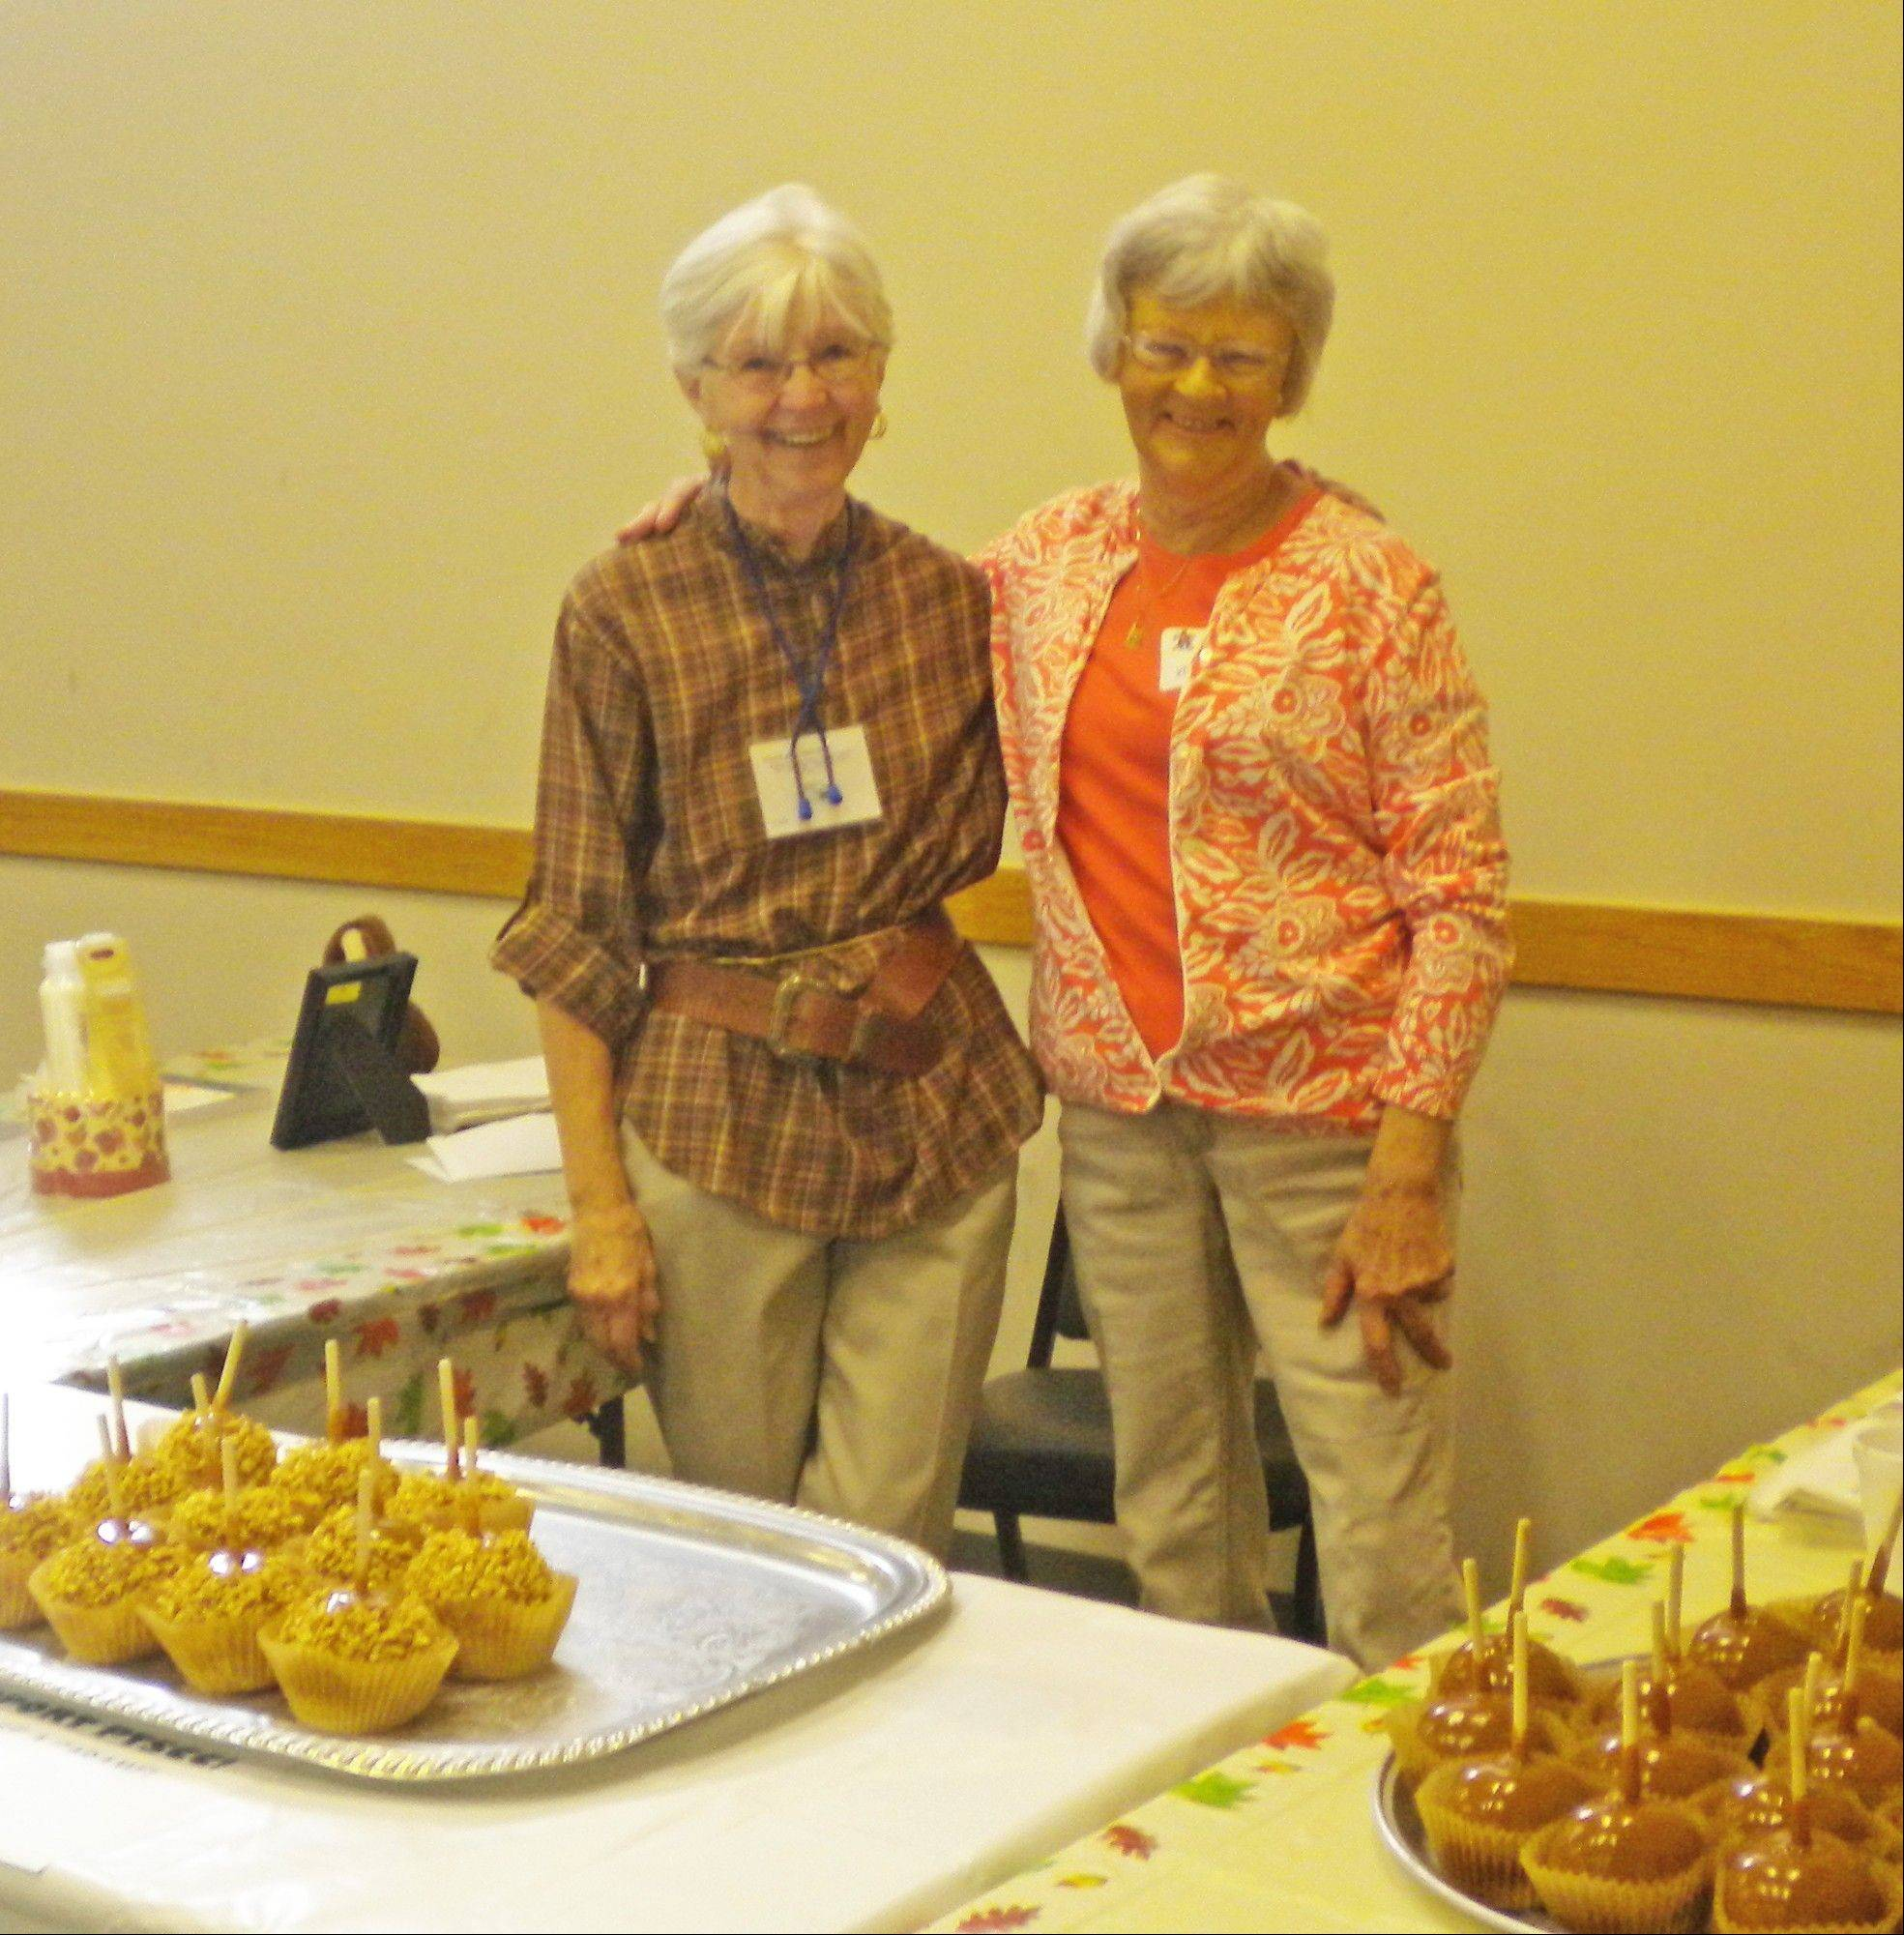 Seniors enjoyed free doughnuts and apple cider along with delicious caramel apples from Morkes Chocolates at Palatine Township Senior Center's Fall Festival Oct. 1.